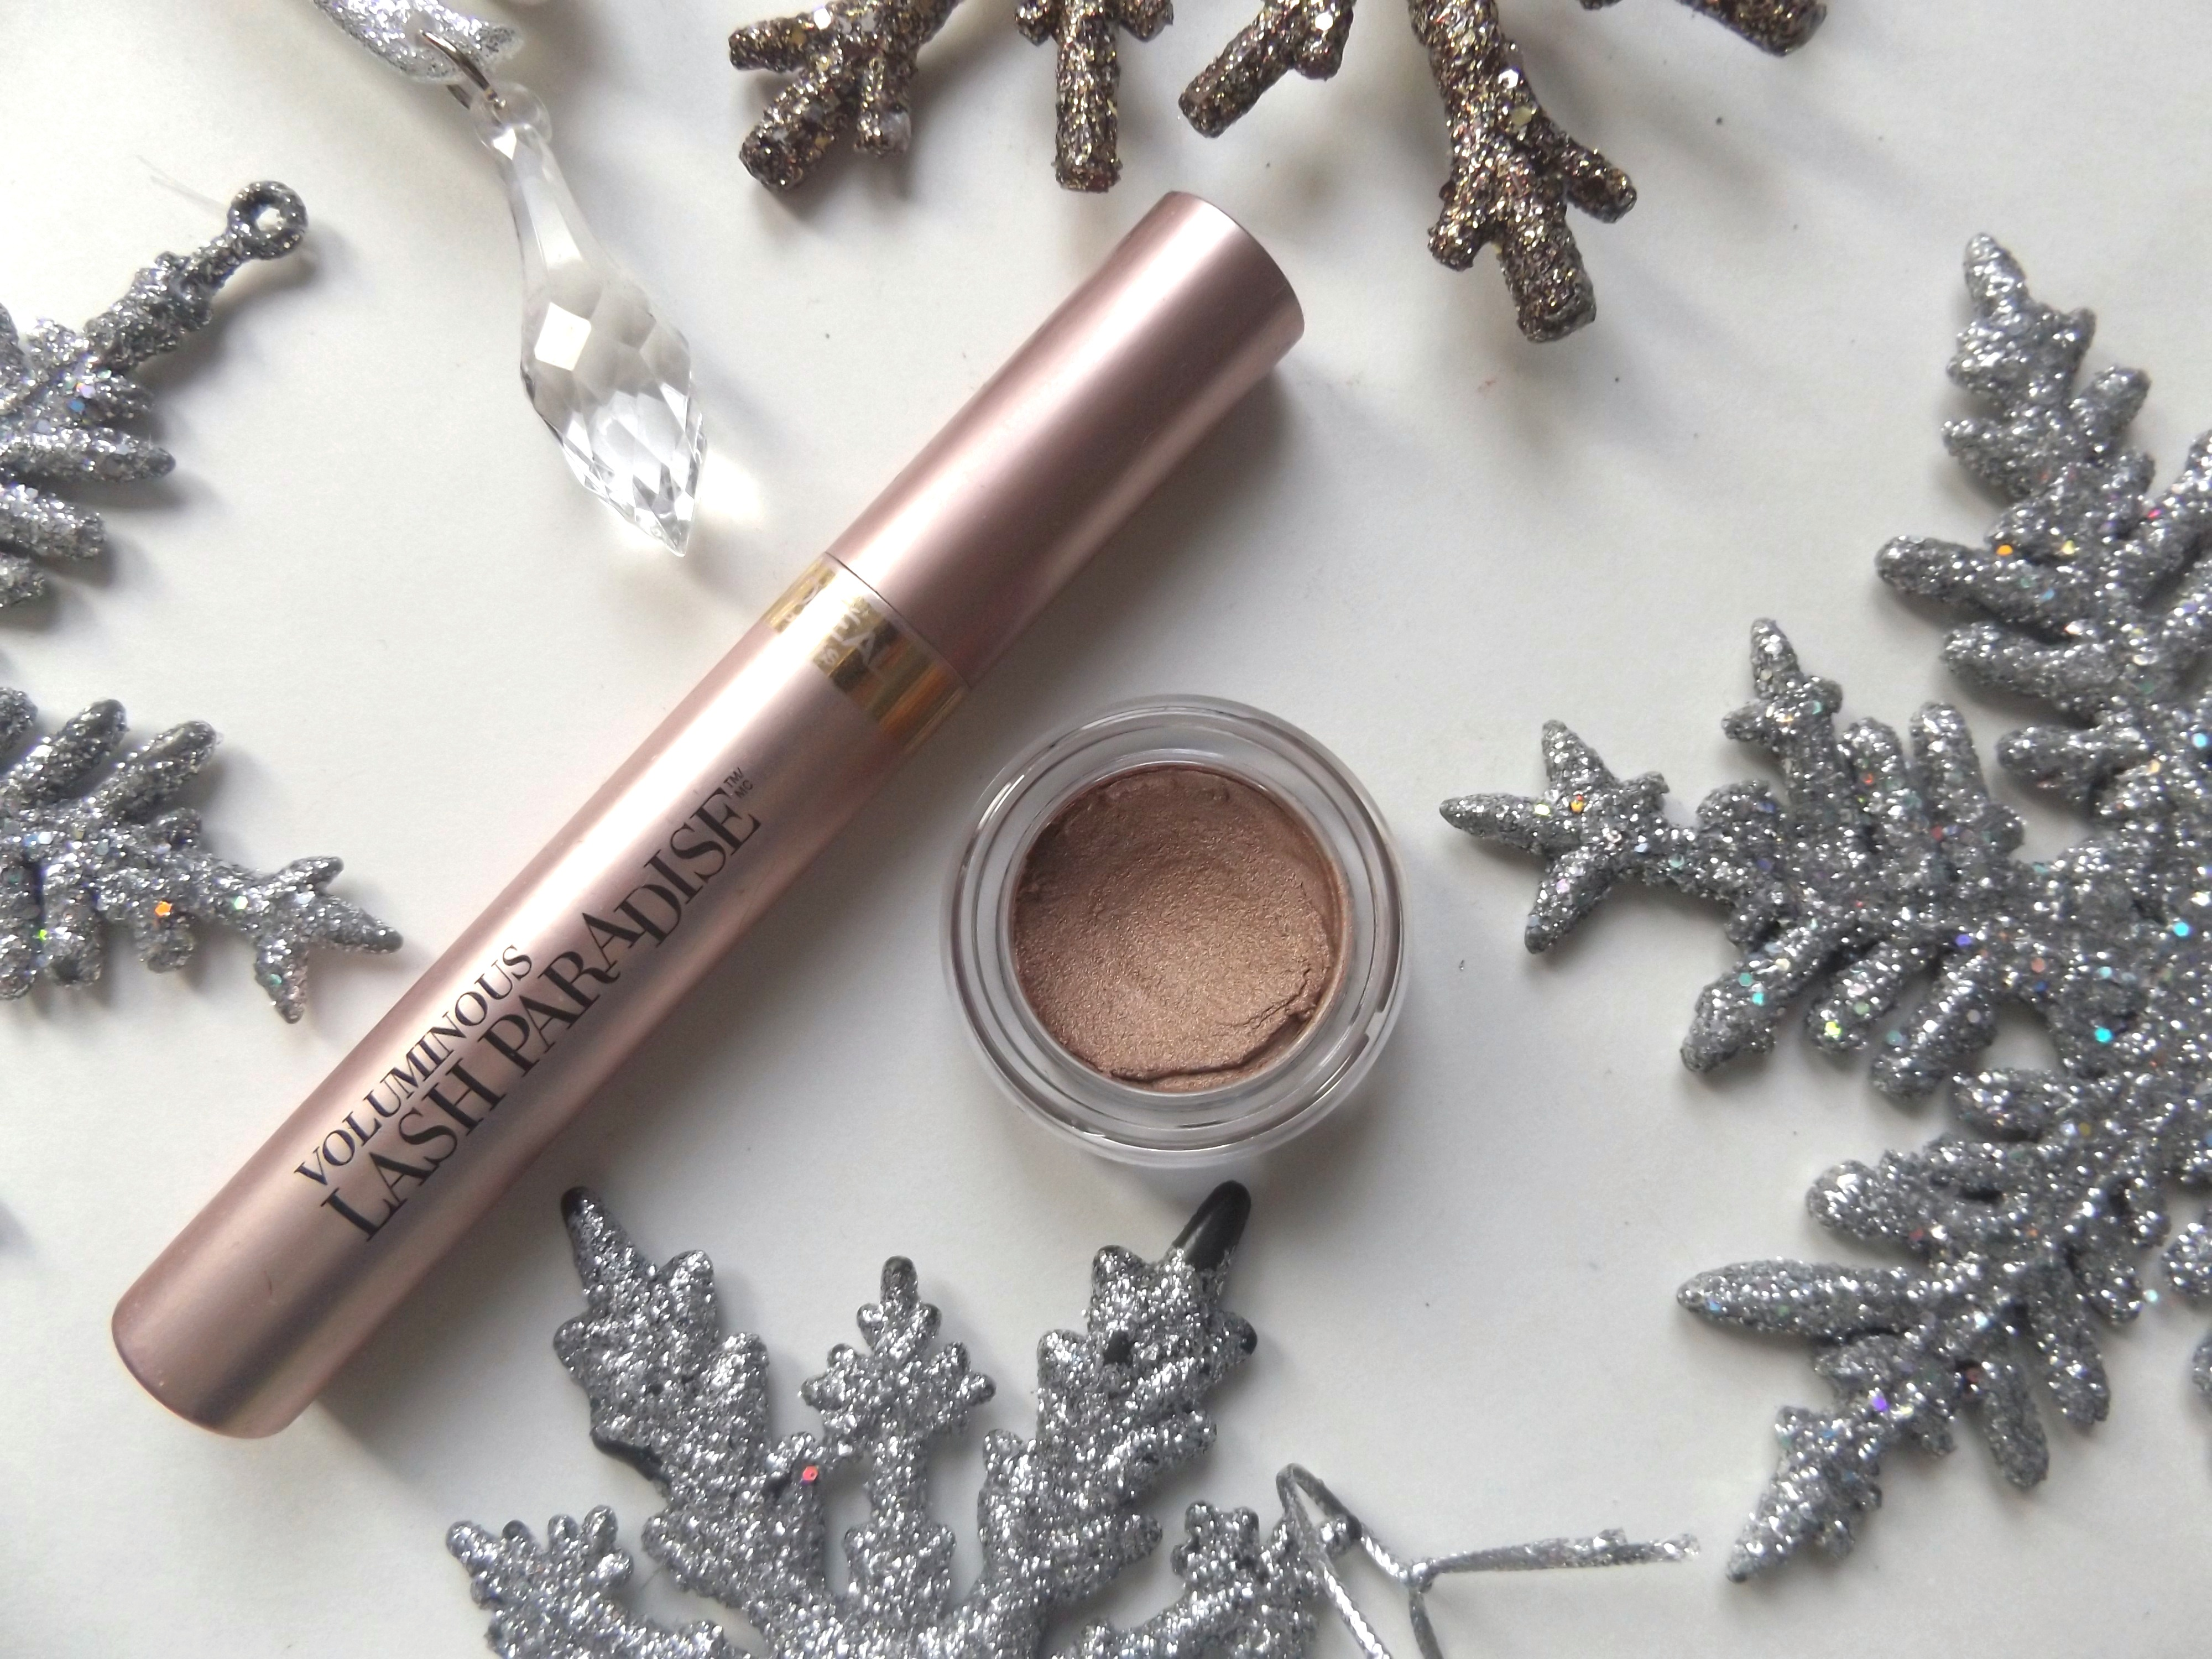 L'Oreal Lash Paradise and Annabelle Jelly eyeshadow